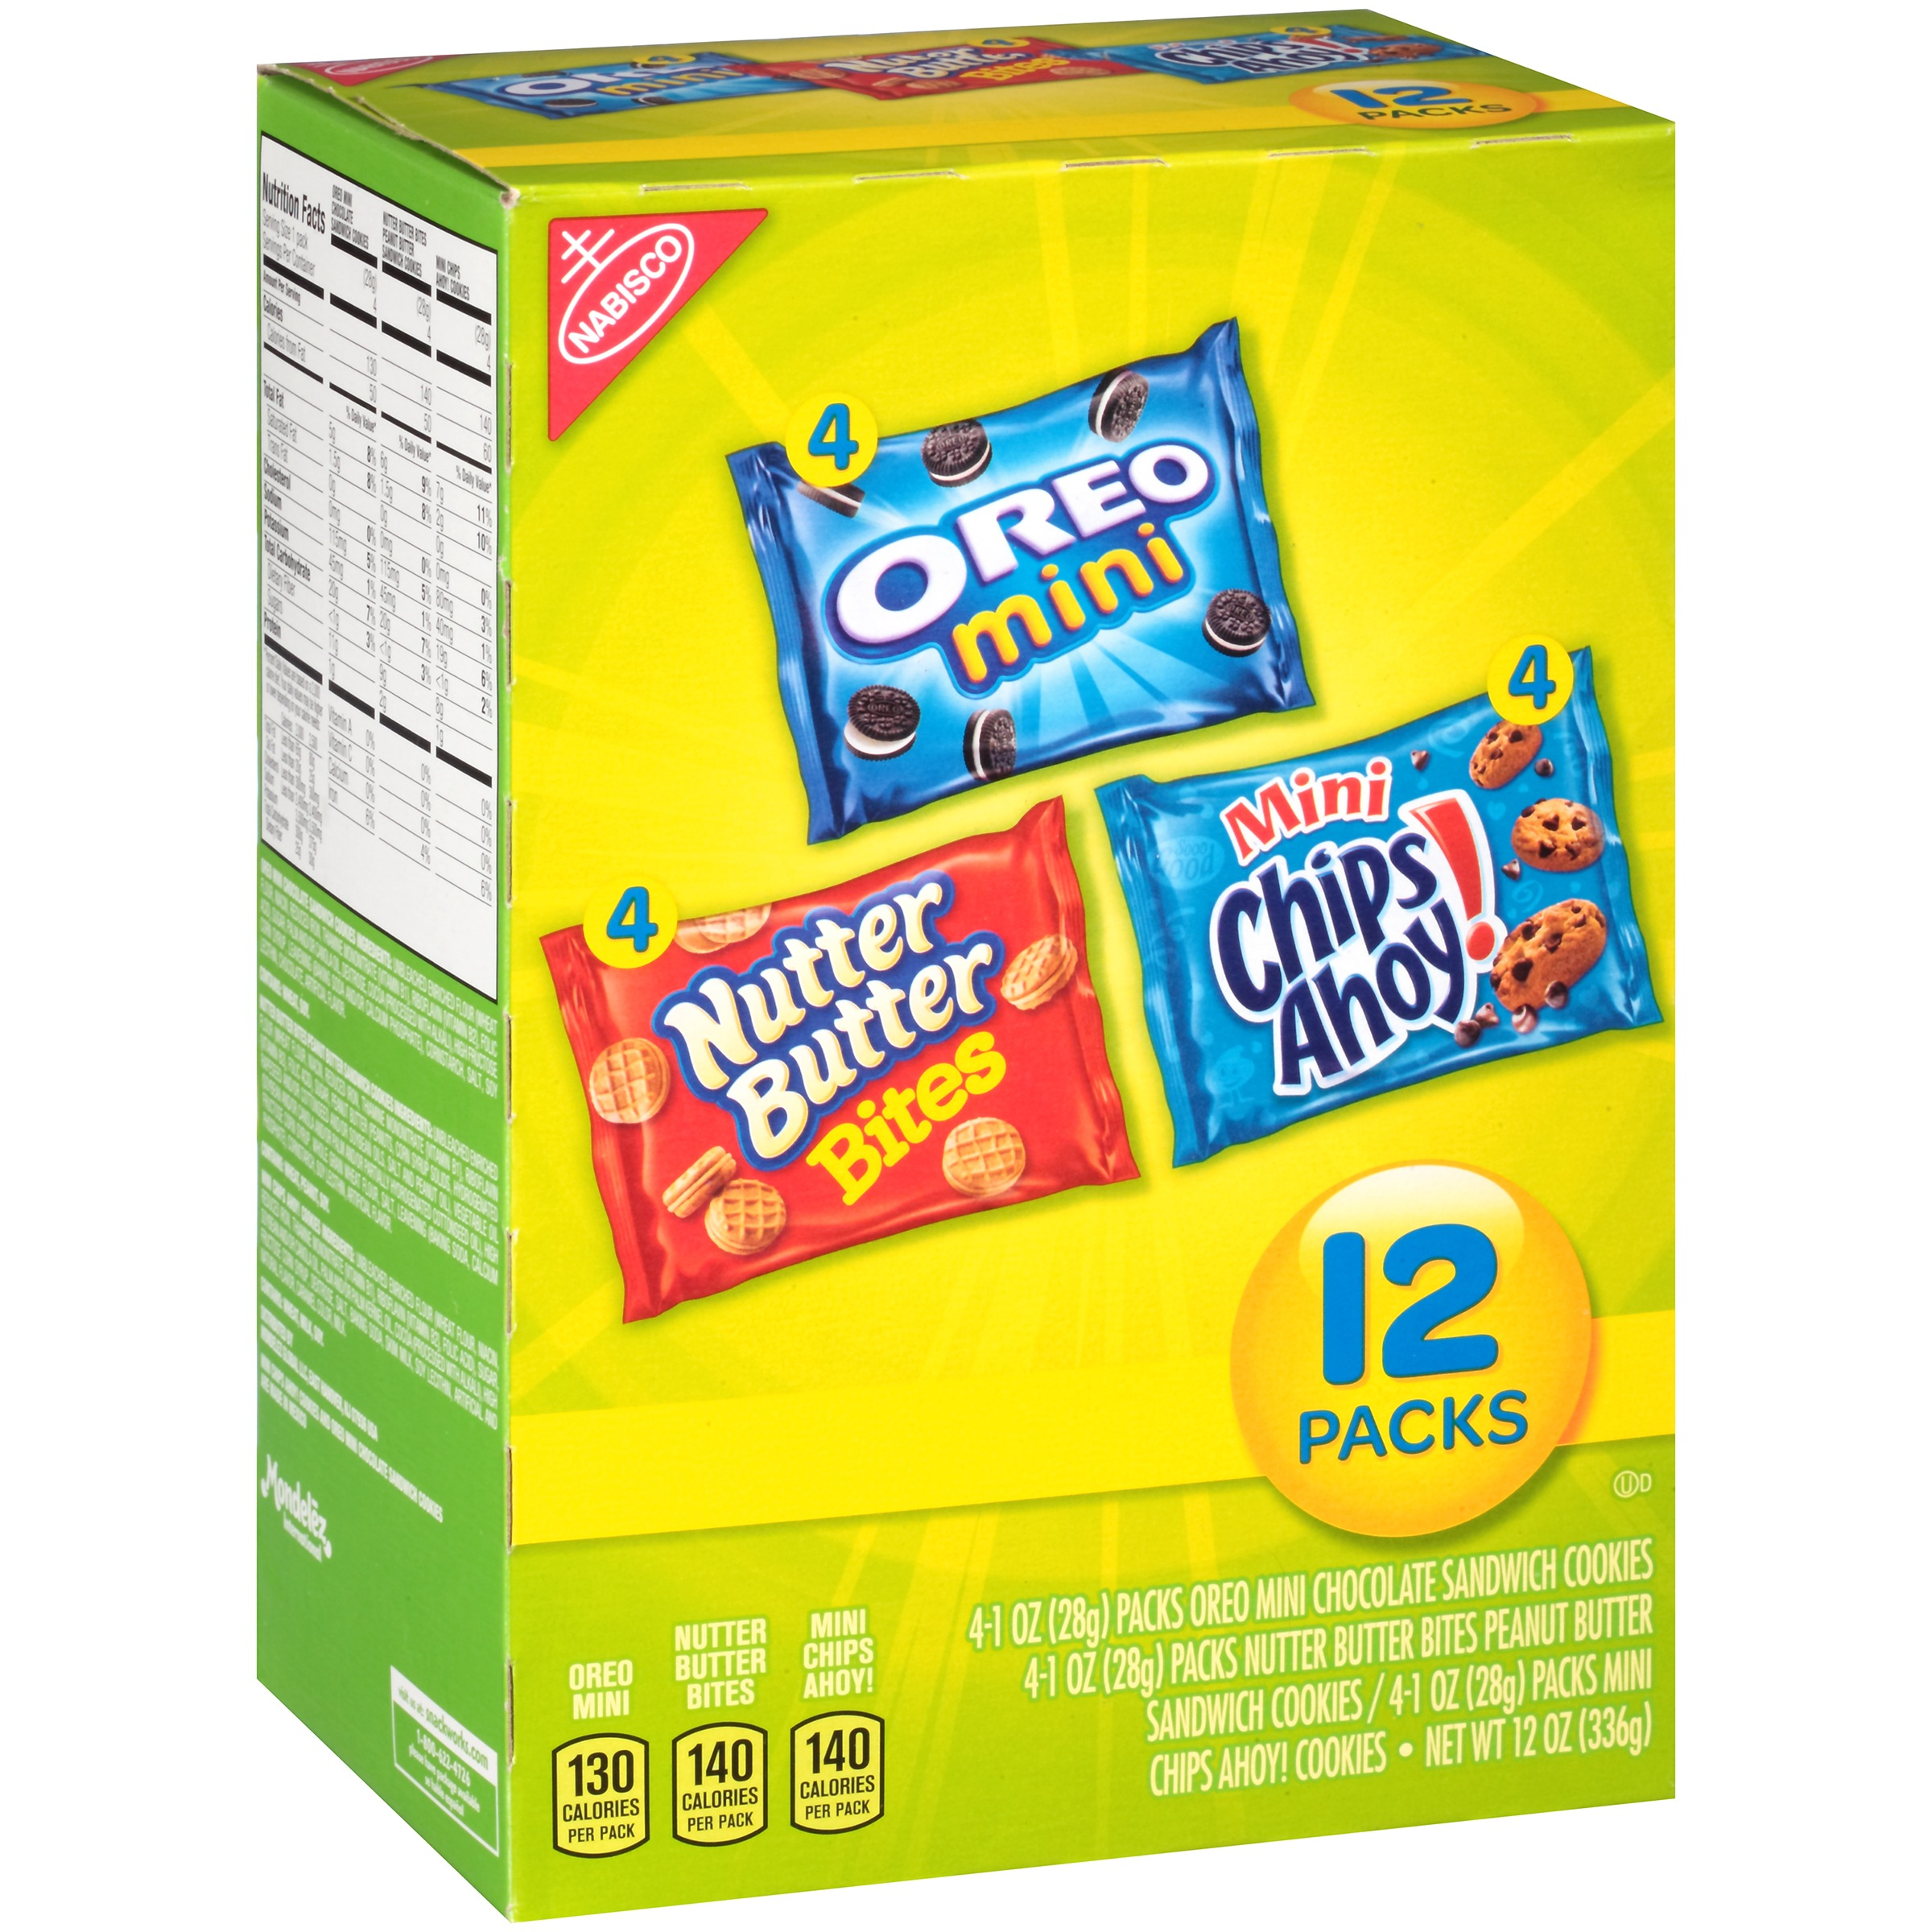 Nabisco Oreo Mini, Nutter Butter Bites & Mini Chips Ahoy! Cookies Variety Pack, 1 oz, 12 count